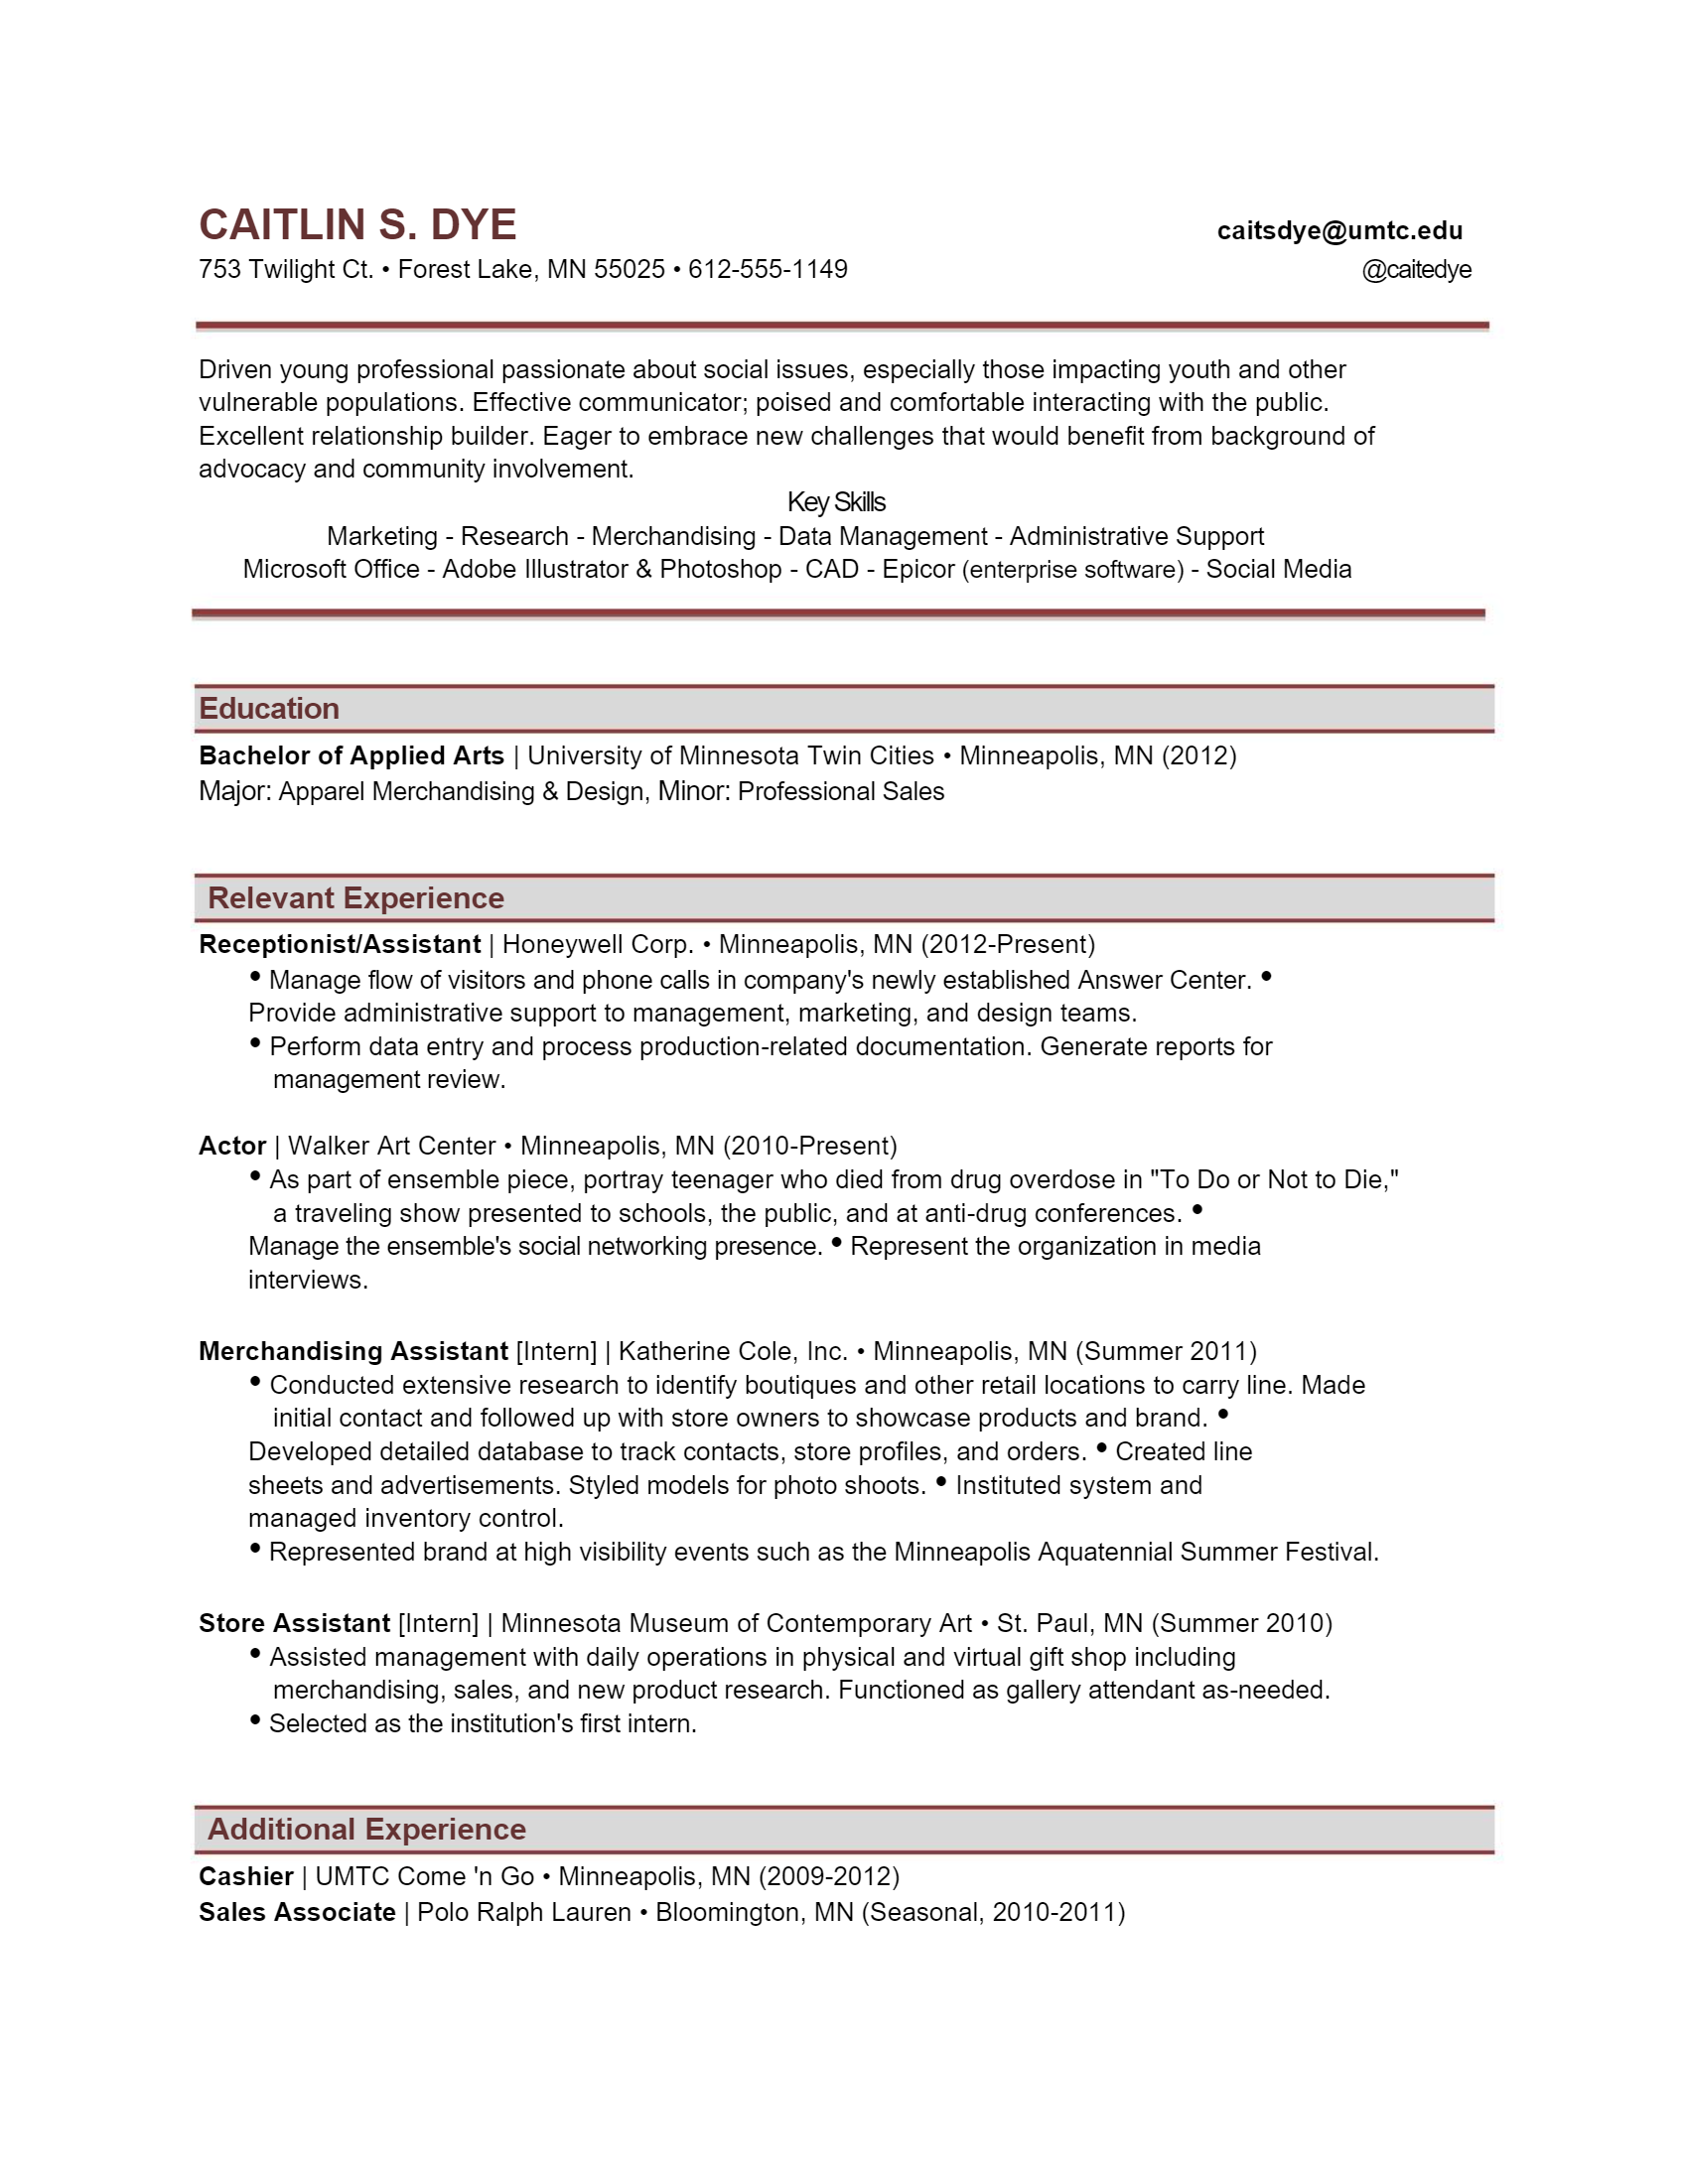 Assistant Resume > Assistant Resume .Docx (Word)